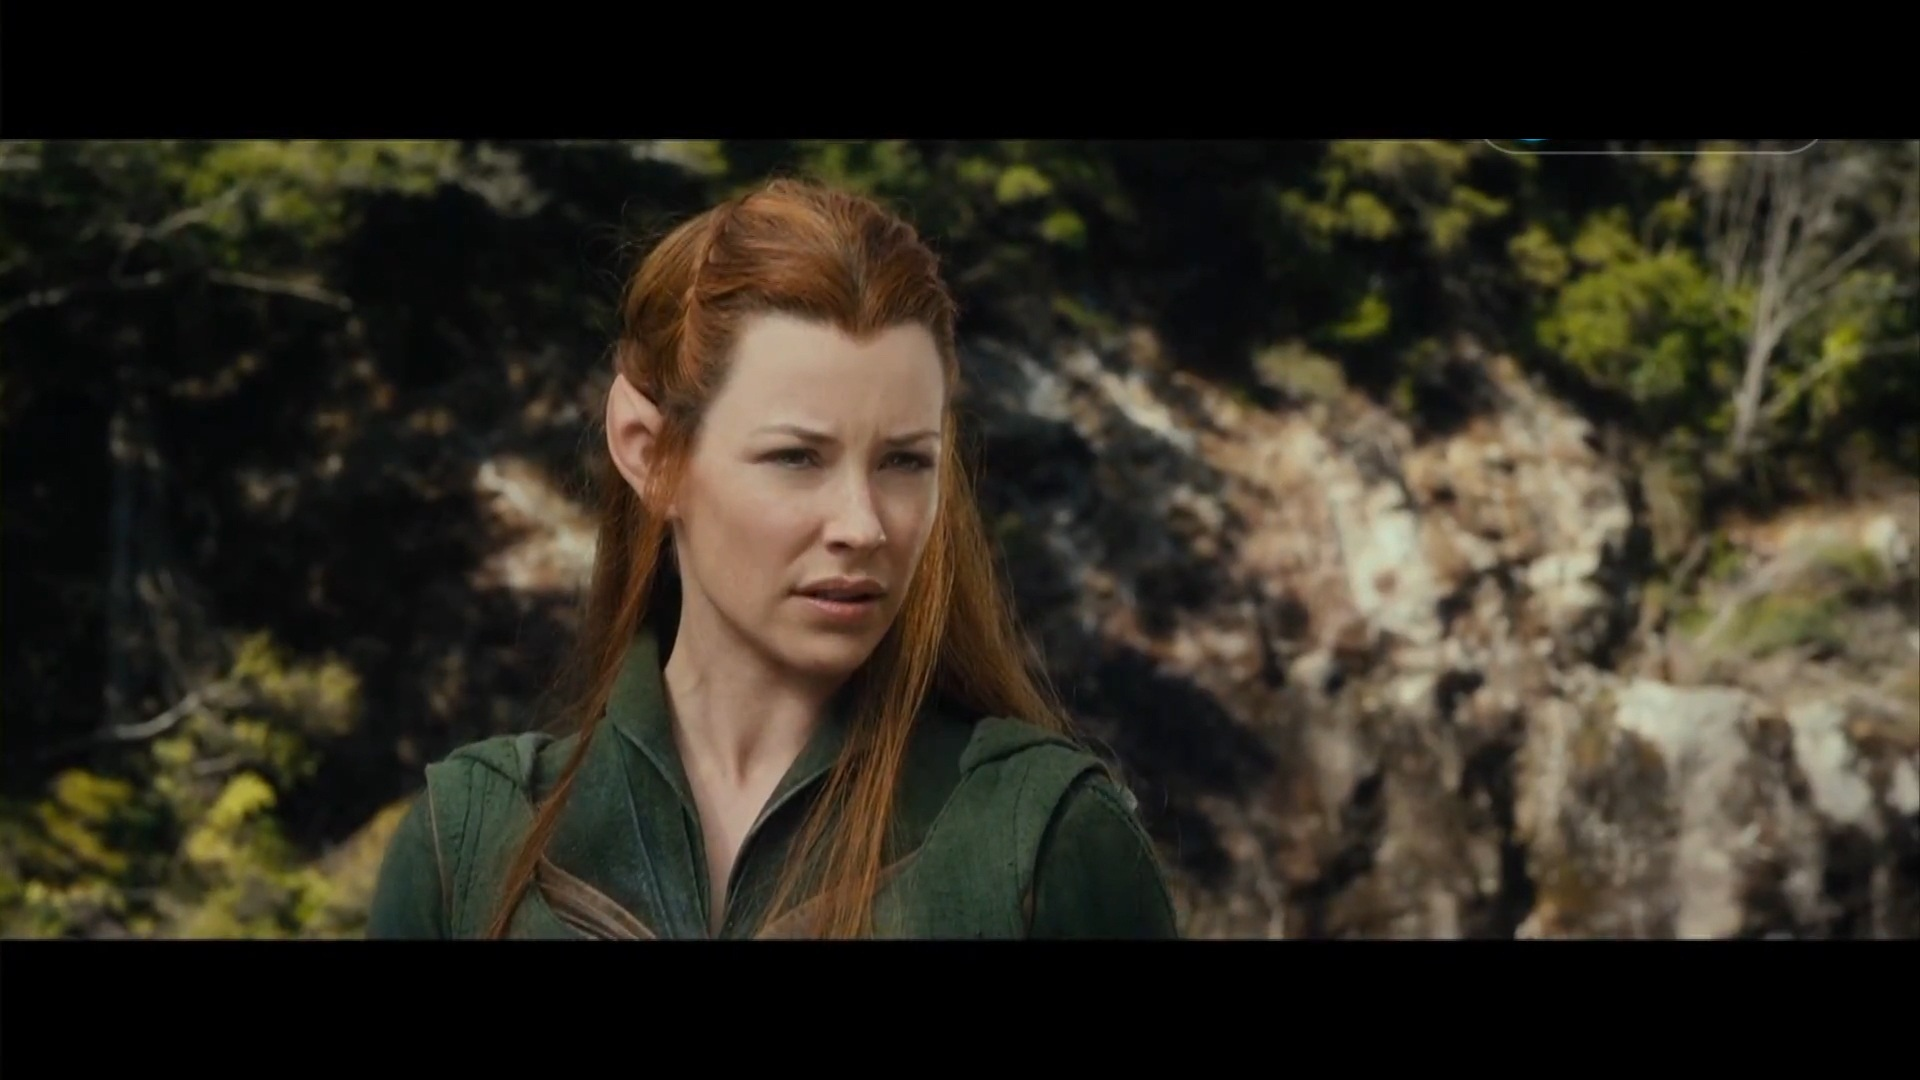 evangeline lilly fansite